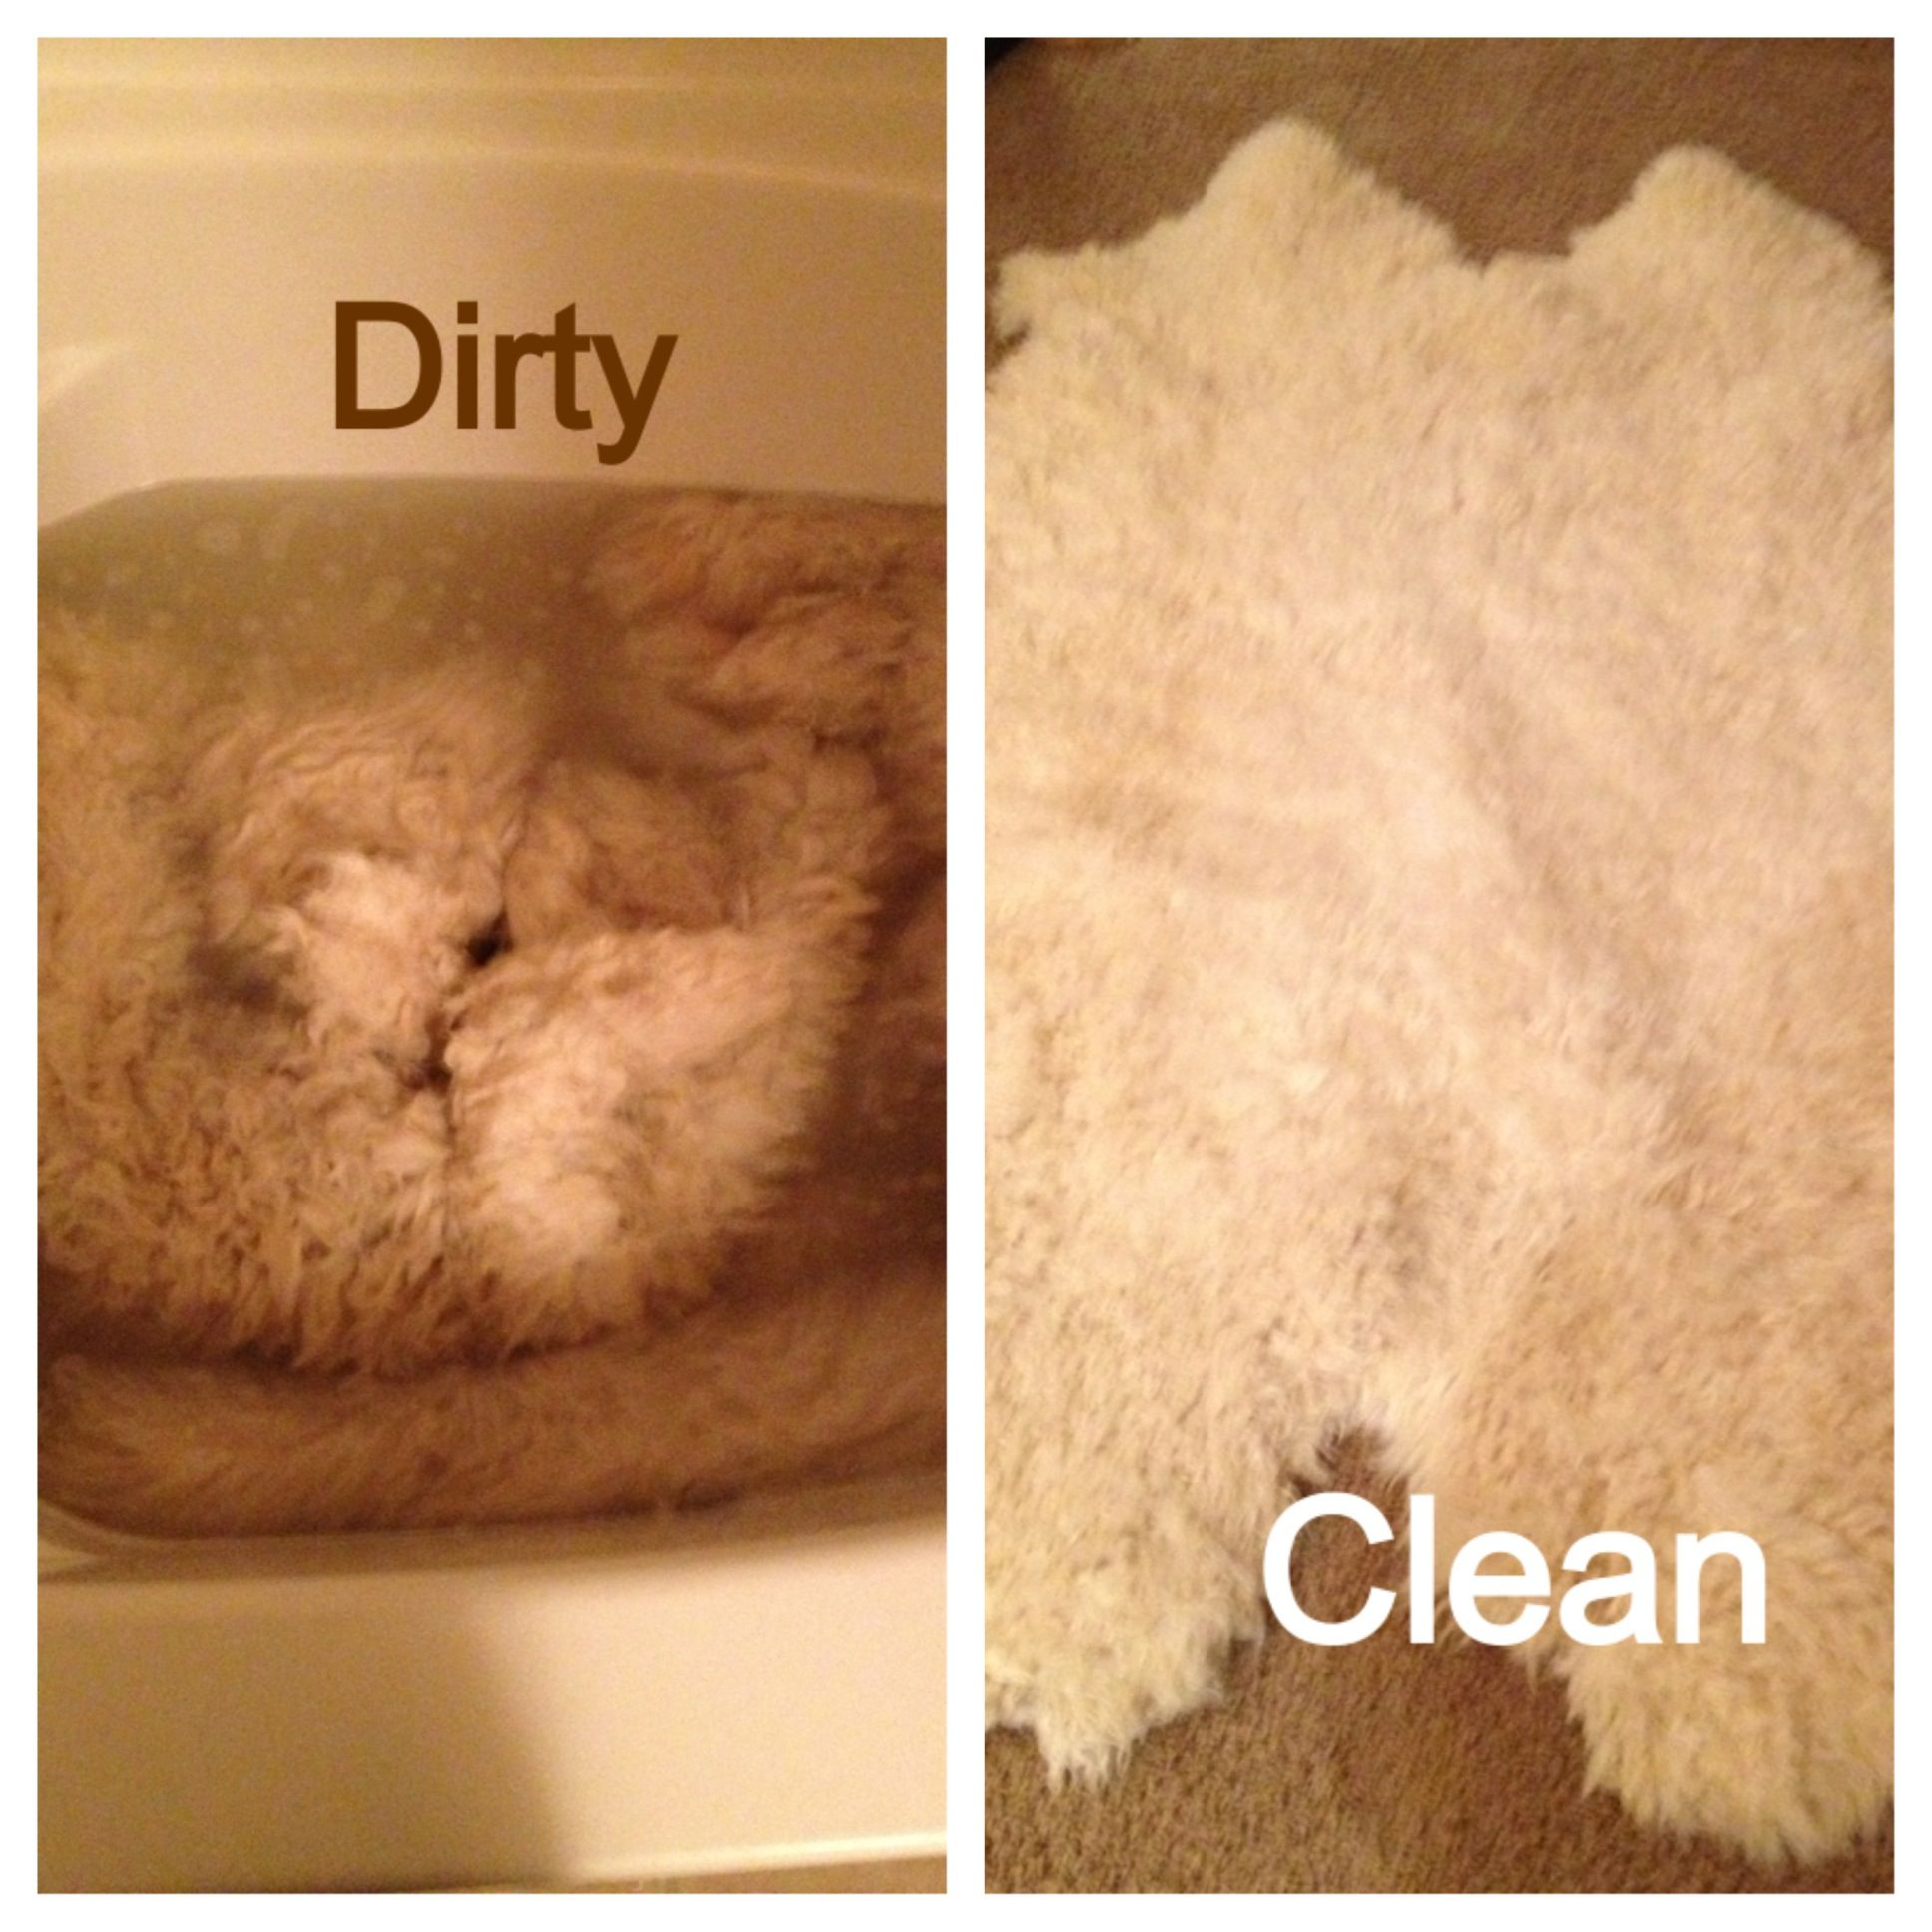 Tips And Tricks How To Clean Sheepskin Rugs At Home Wash In Tub With Room Temp Water Using Baby Shampoo Hang Outside To Cleaning Pom Pom Rug Laundry Hacks